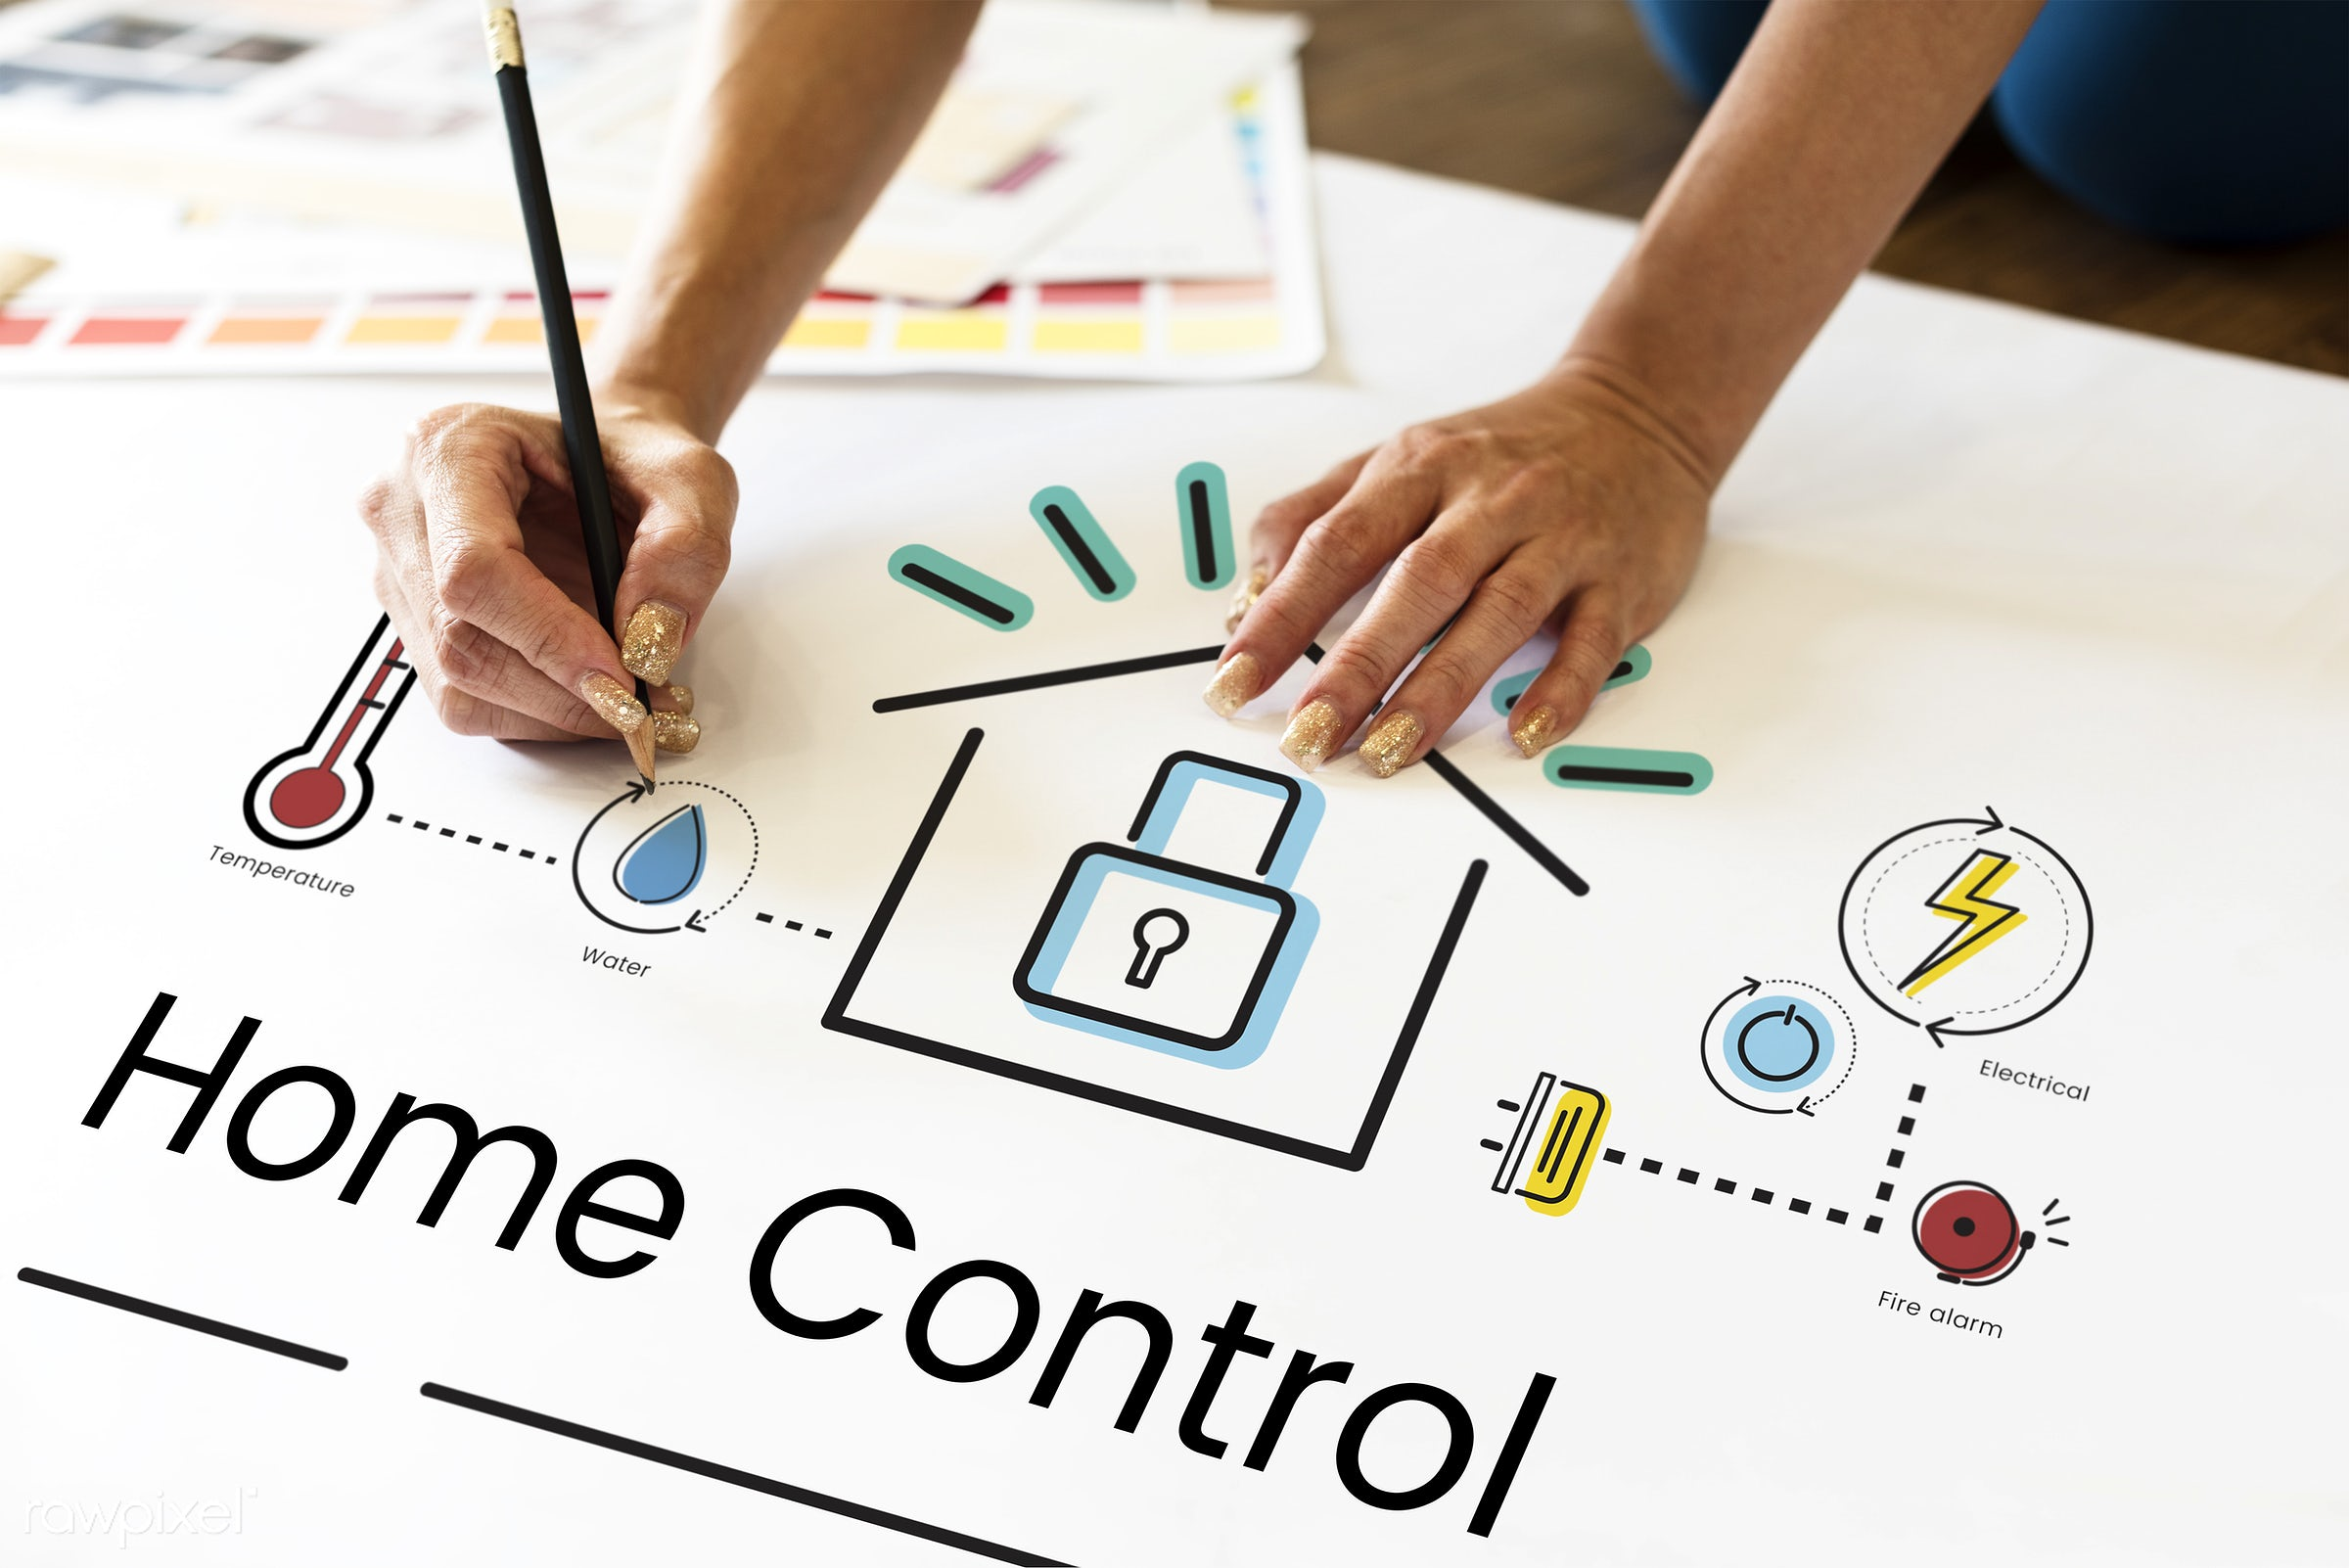 art, automation, control, creation, creative, creativity, design, drawing, graphic, hands, home, home automation, home...